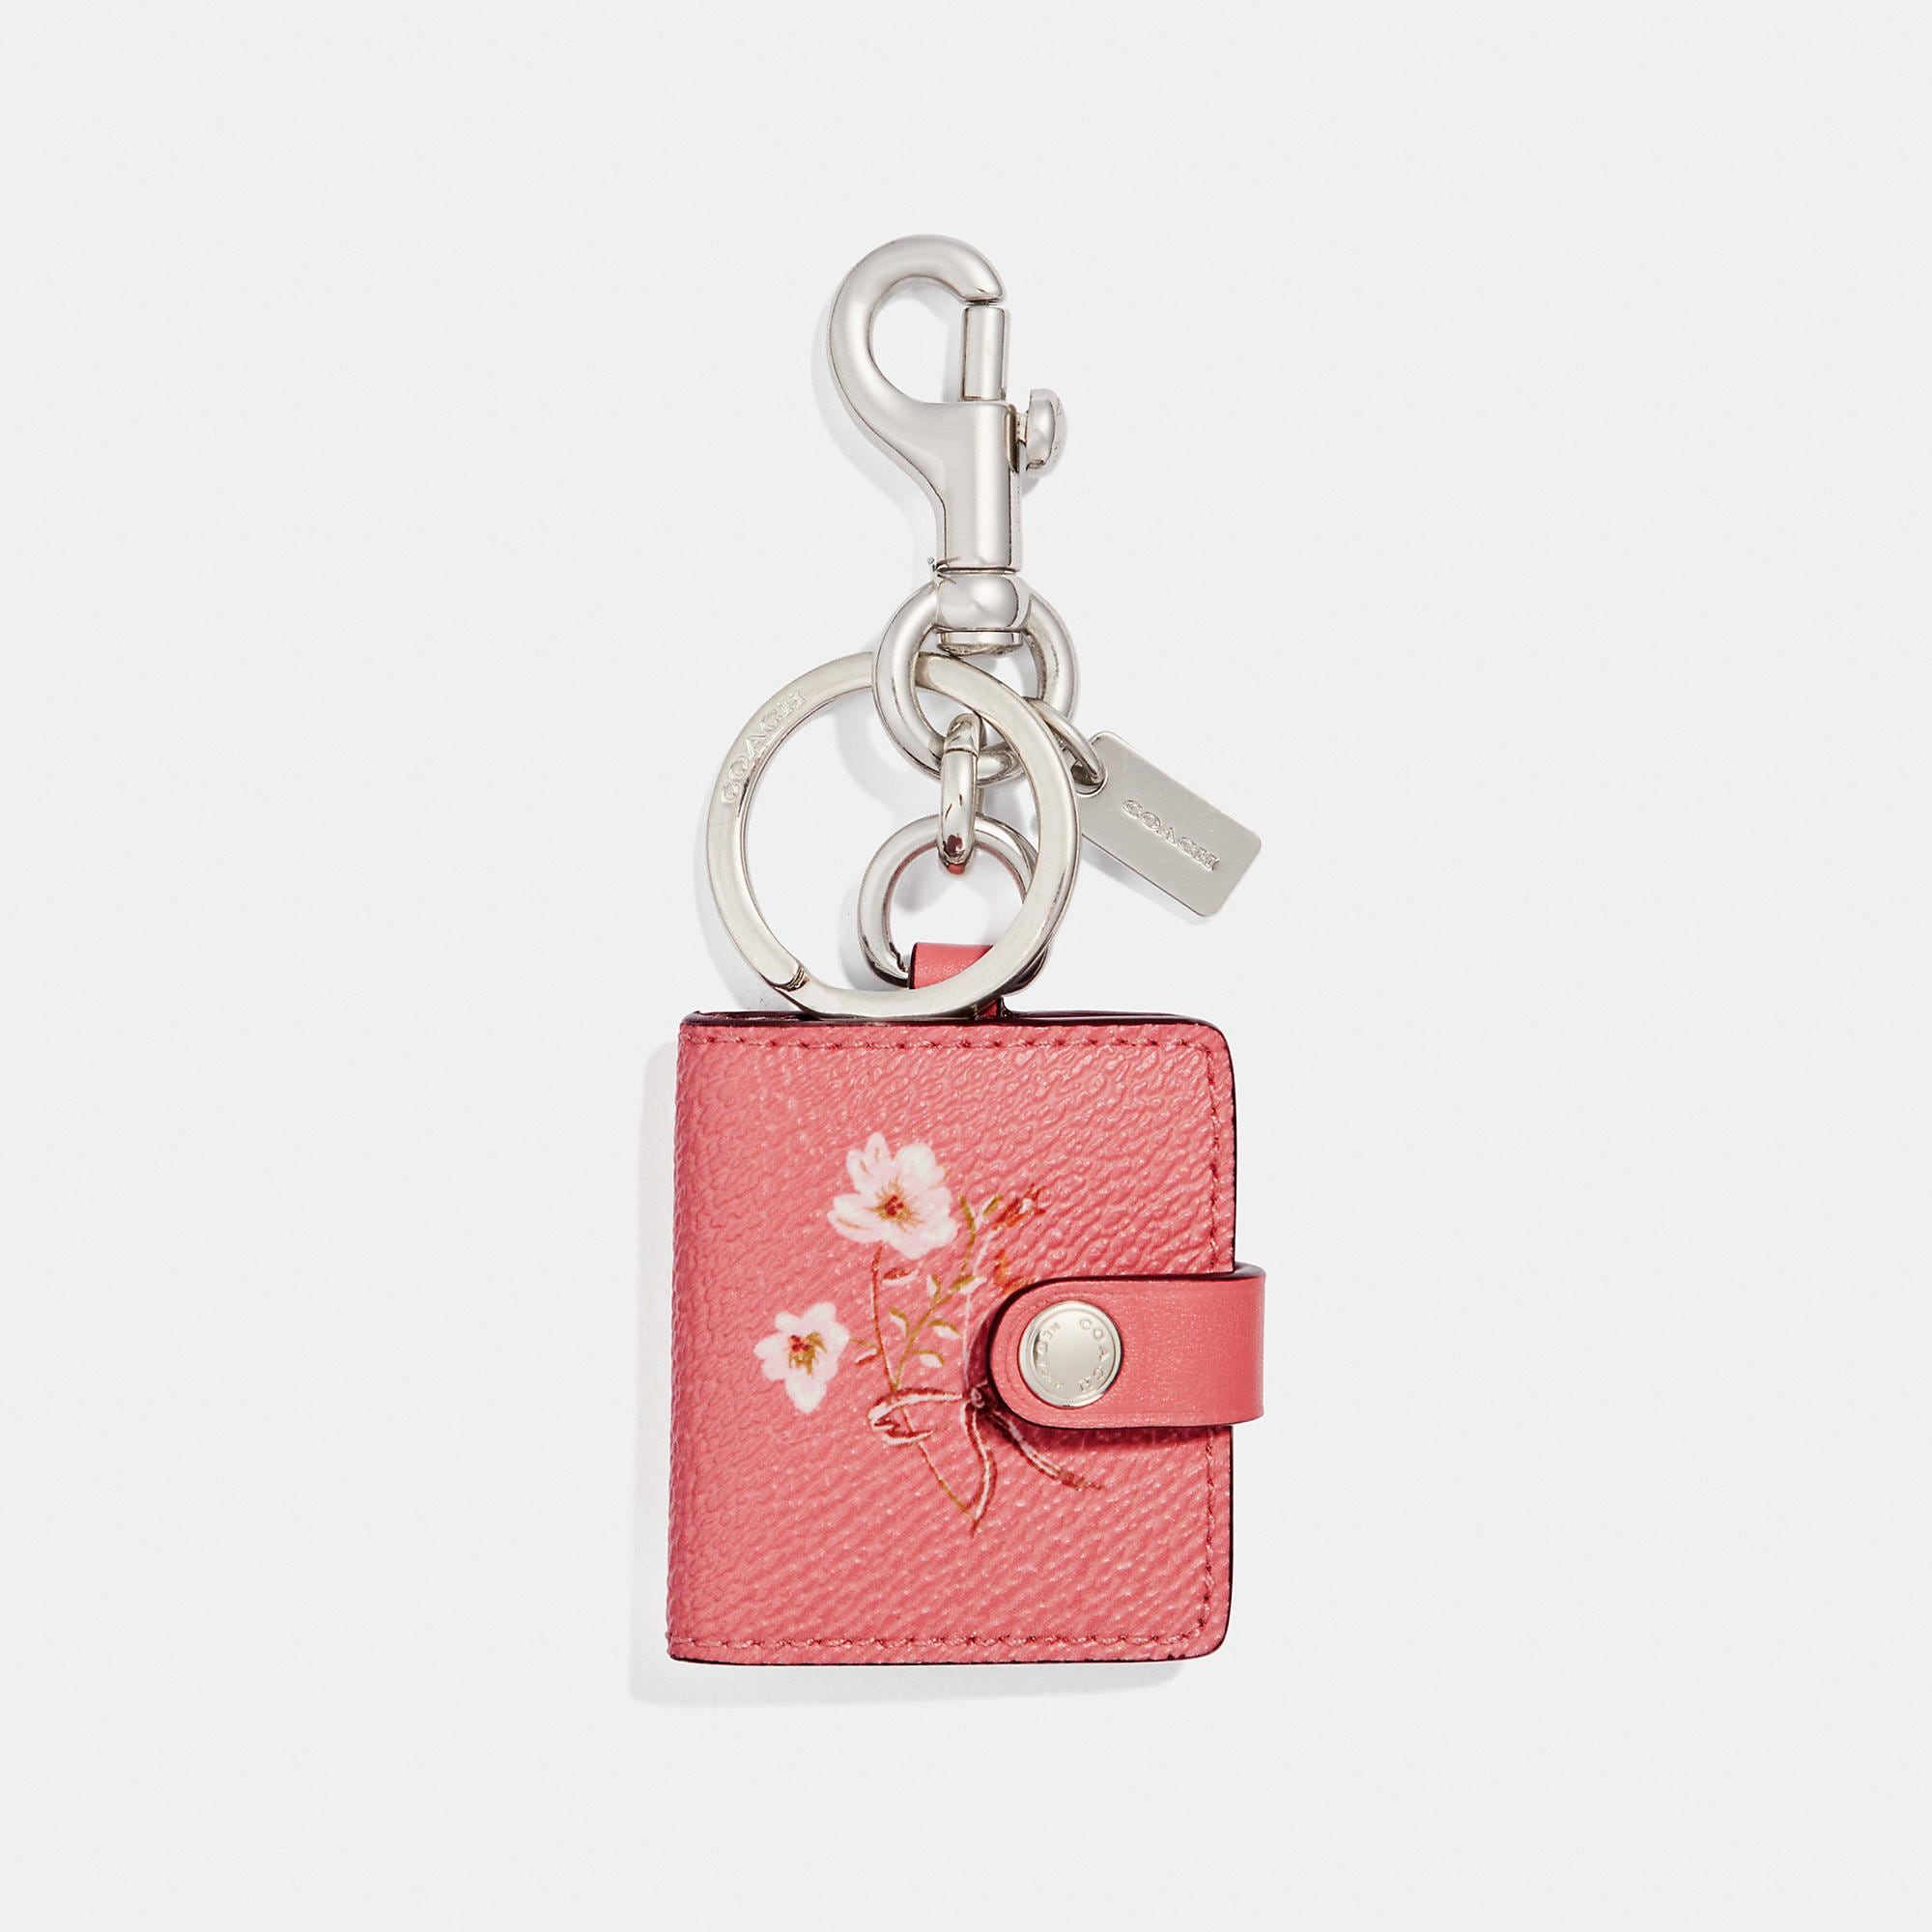 854e9ab833 Coach Picture Frame Bag Charm With Floral Bow Print - Female First ...